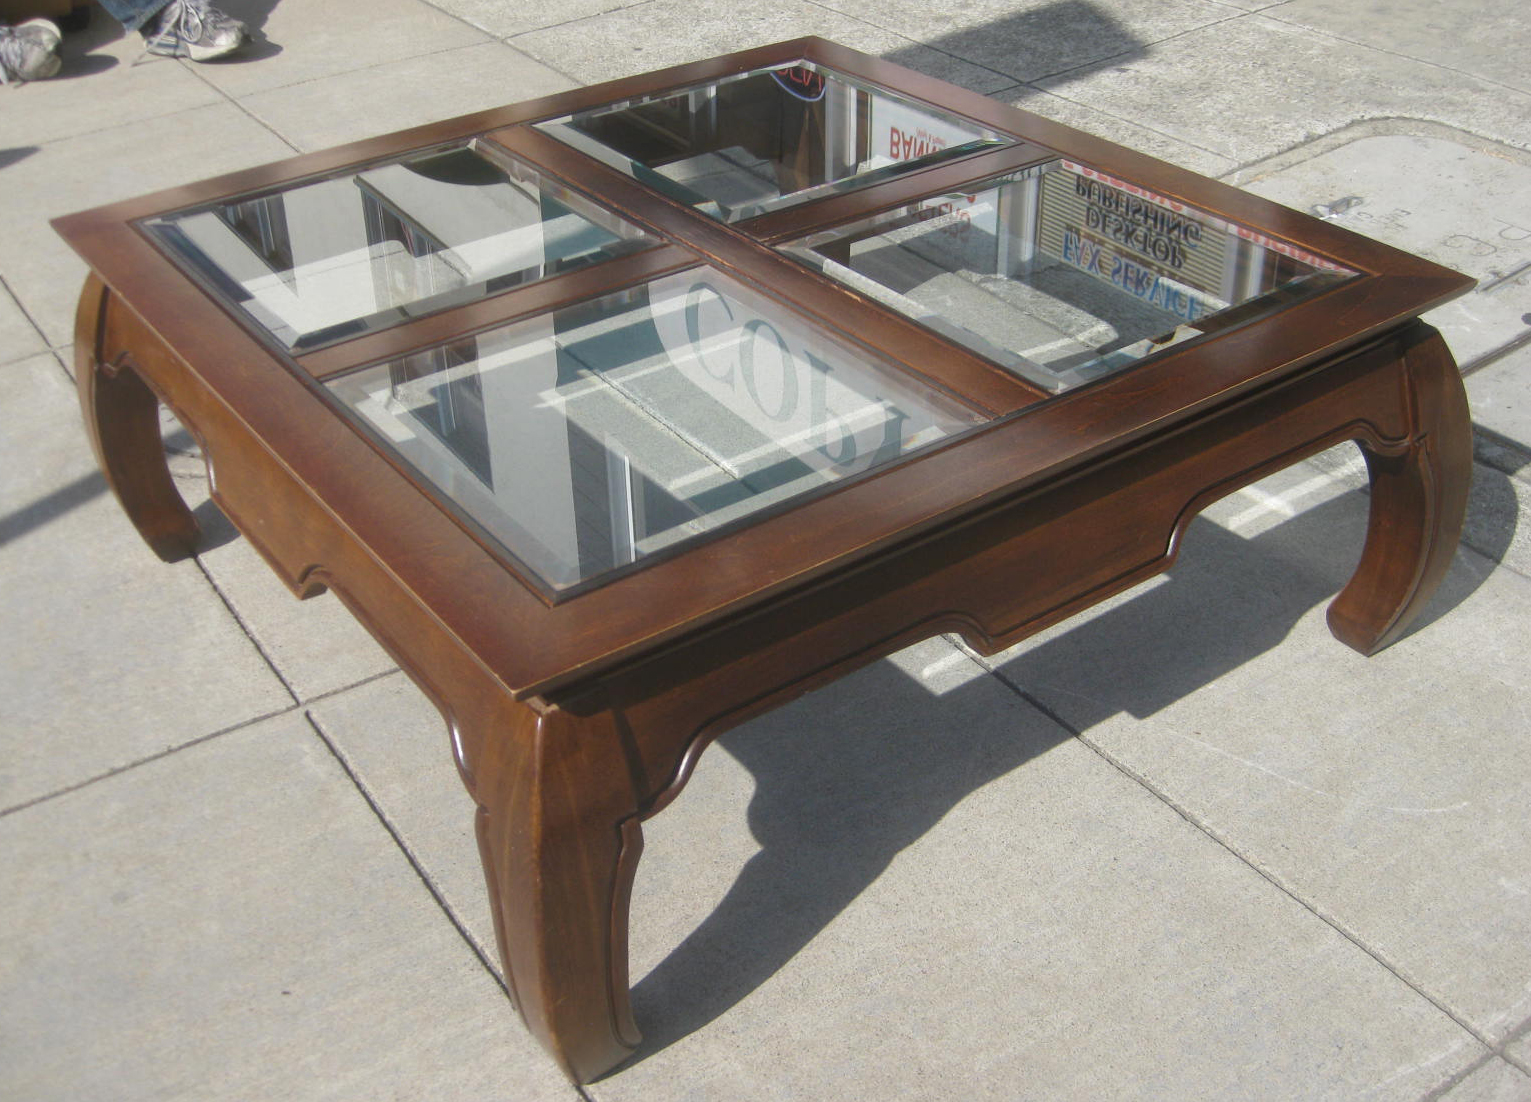 50 Square Coffee Table Uhuru Furniture And Collectibles Sold Square Coffee Table